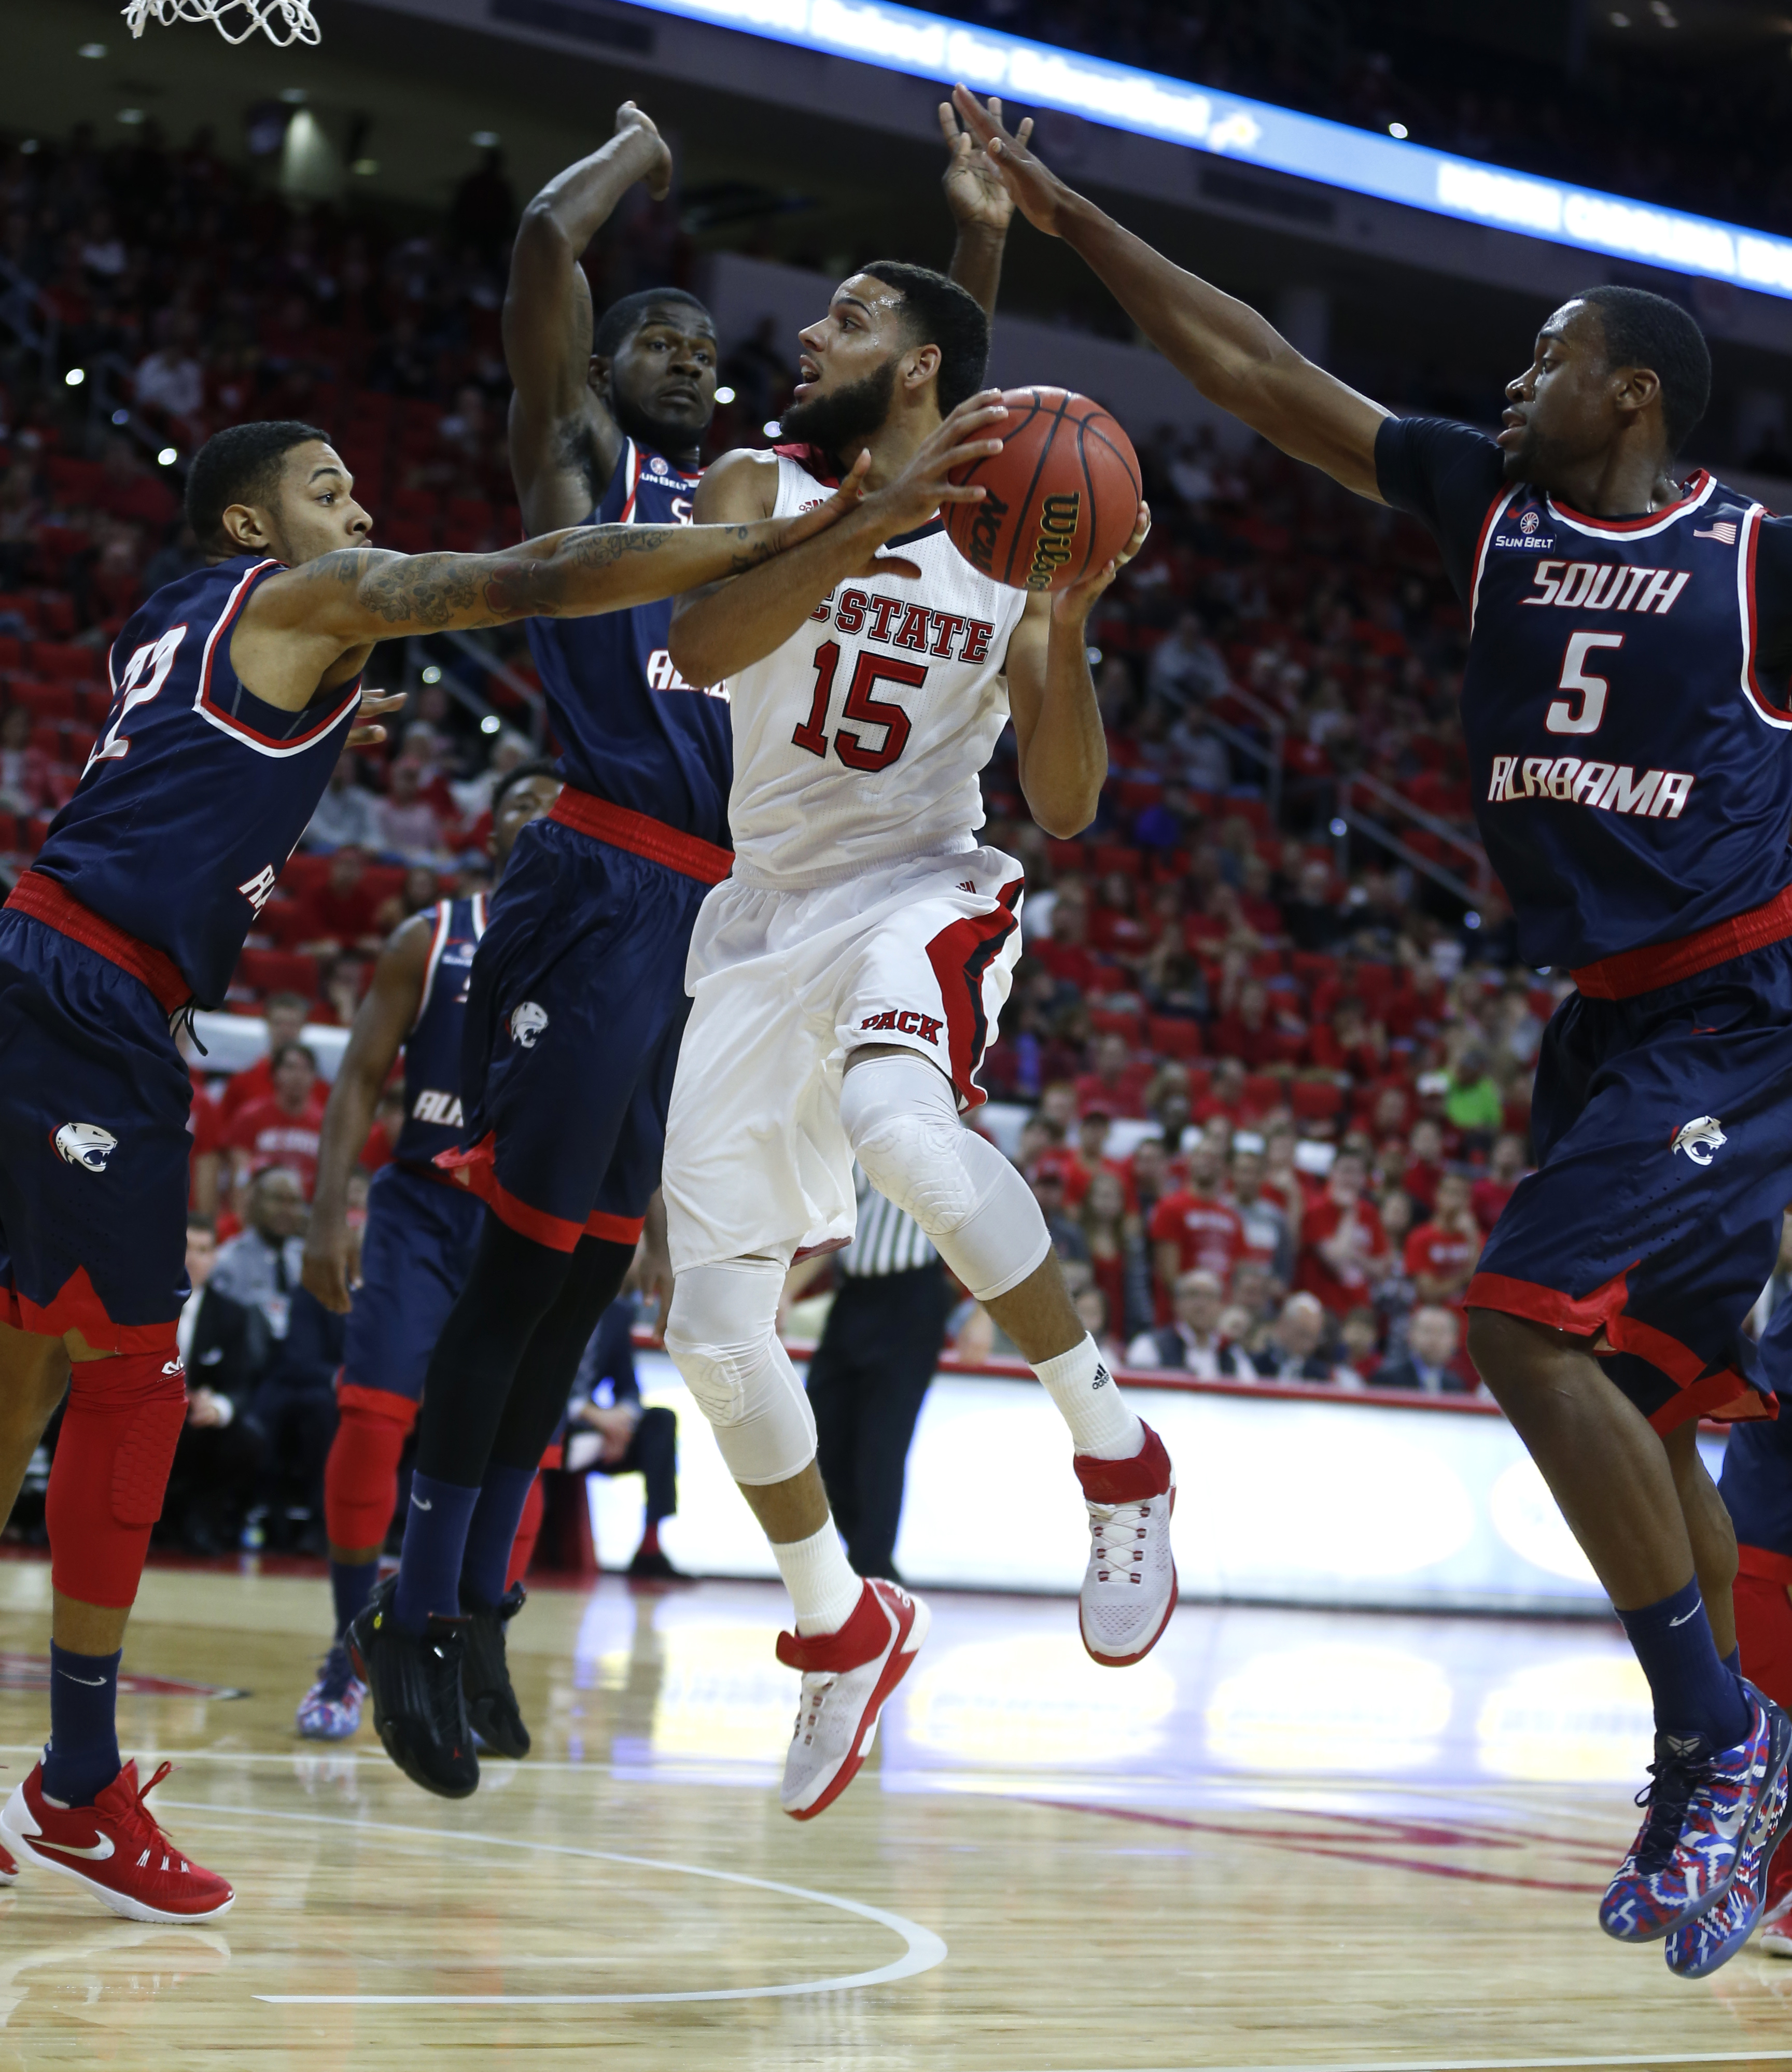 South Alabama's John Brown (22), left, Tafari Whittingham, center left, and Don MuepoKelly (5) defend against North Carolina State's Cody Martin (15) during the first half of an NCAA college basketball game in Raleigh, N.C., Sunday, Nov. 15, 2015. (Ethan